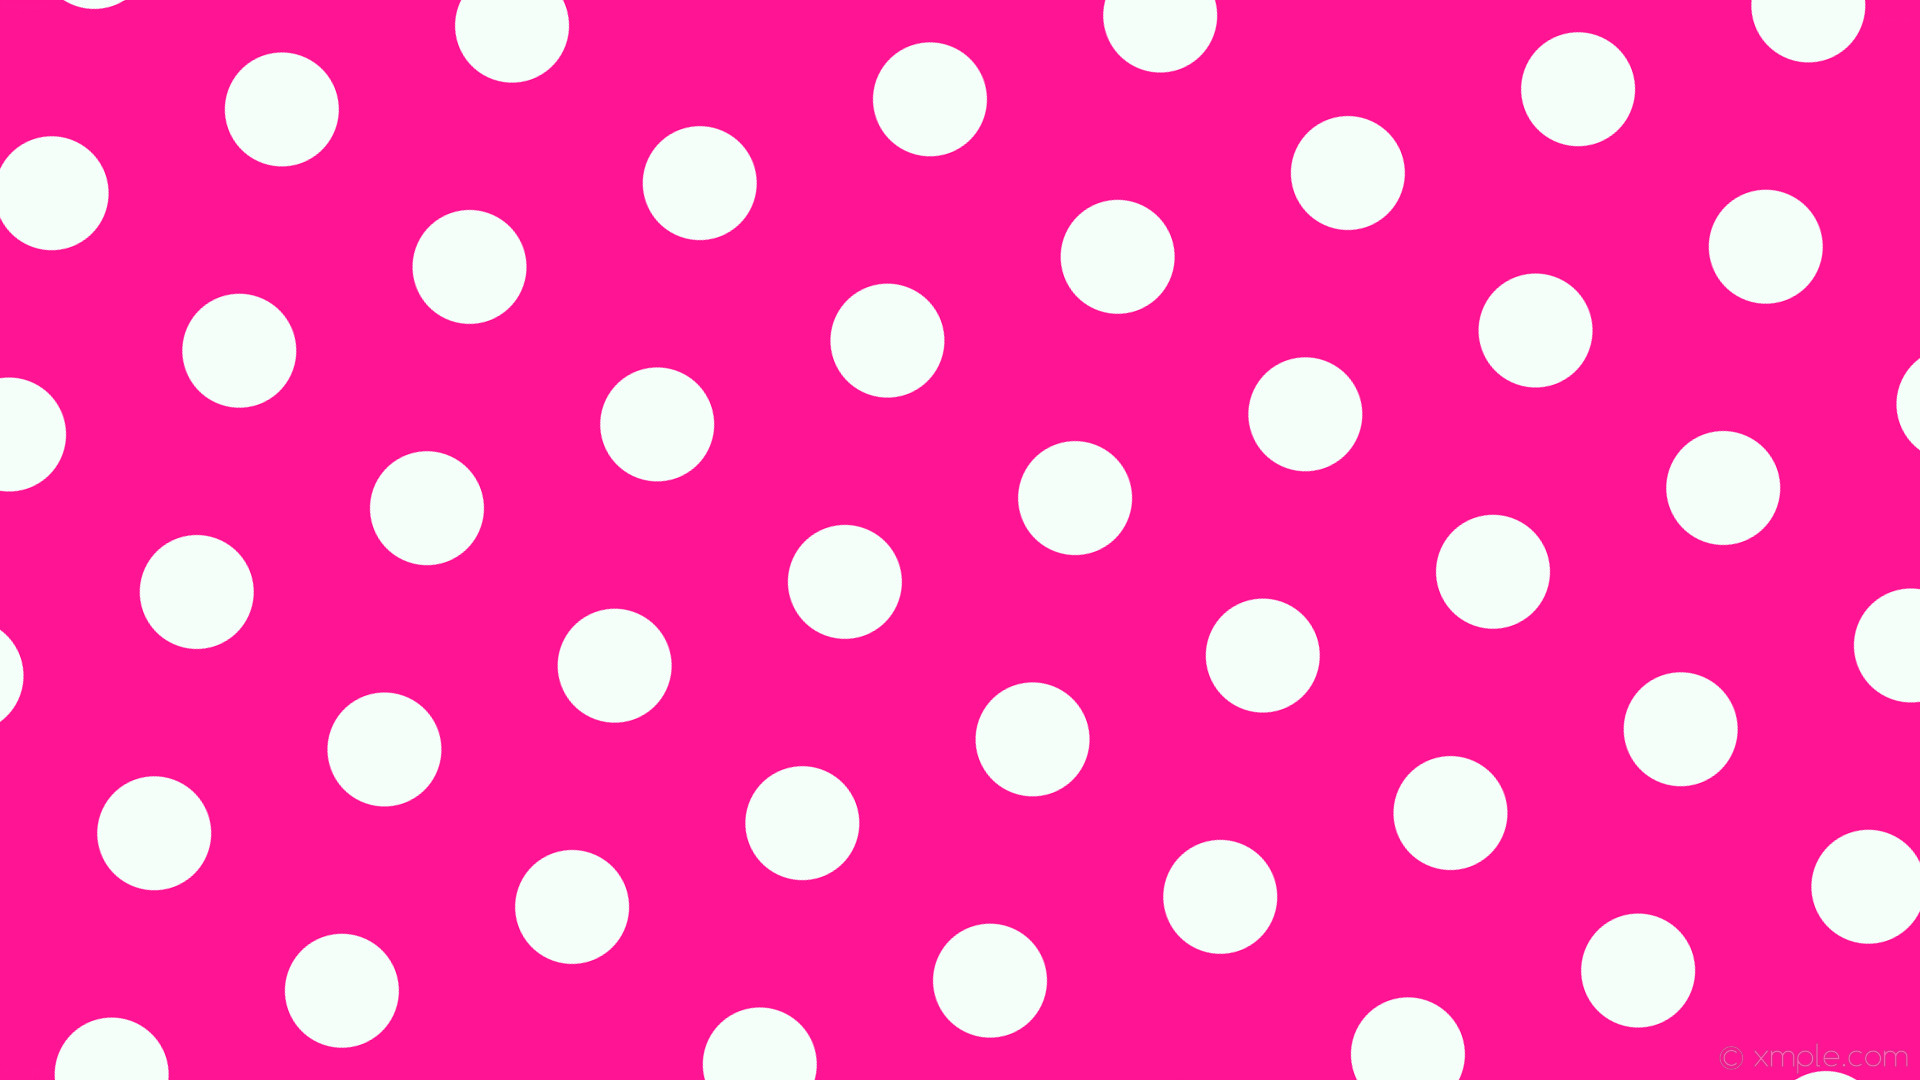 white polka dot wallpaper 83 images